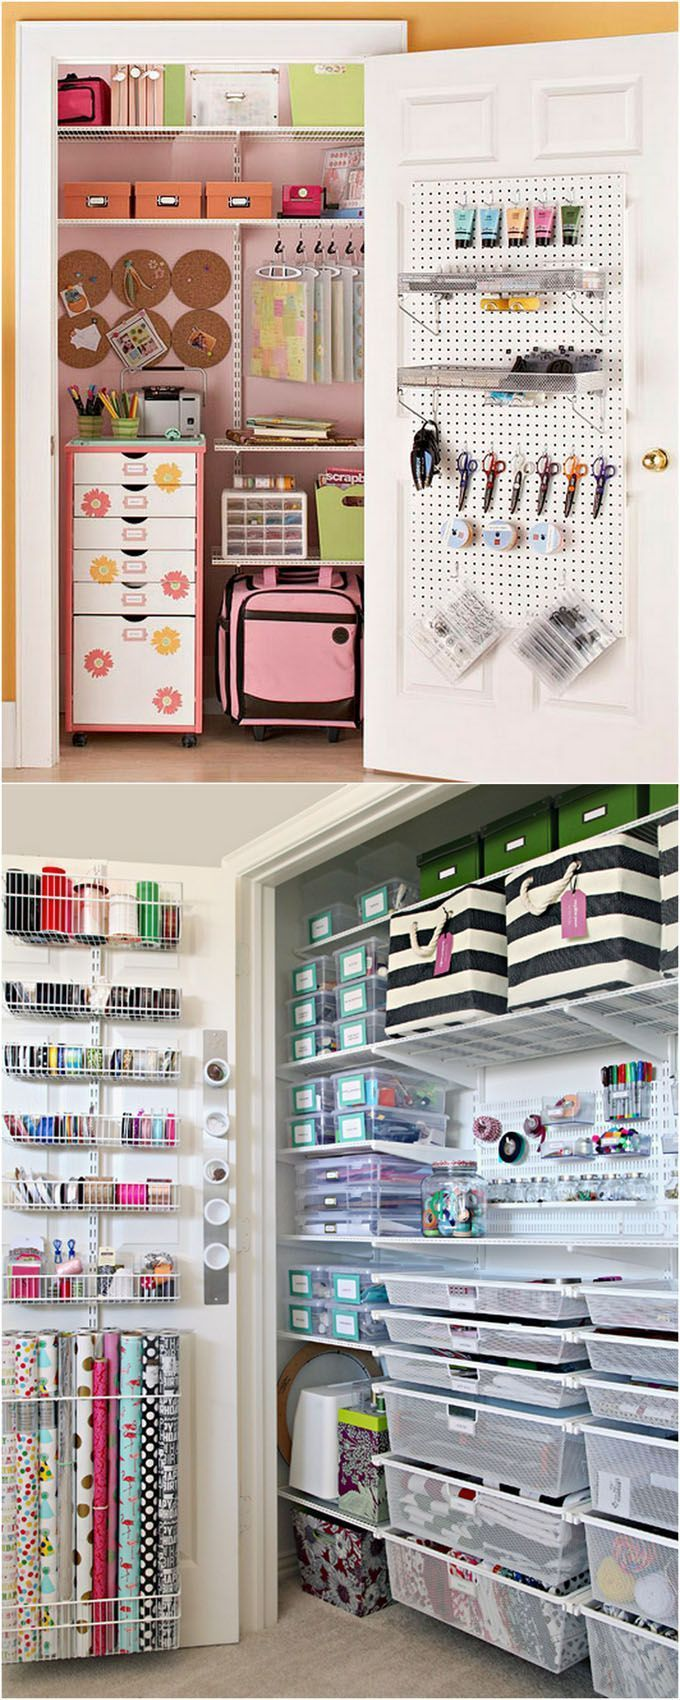 21 great ways to completely organize your